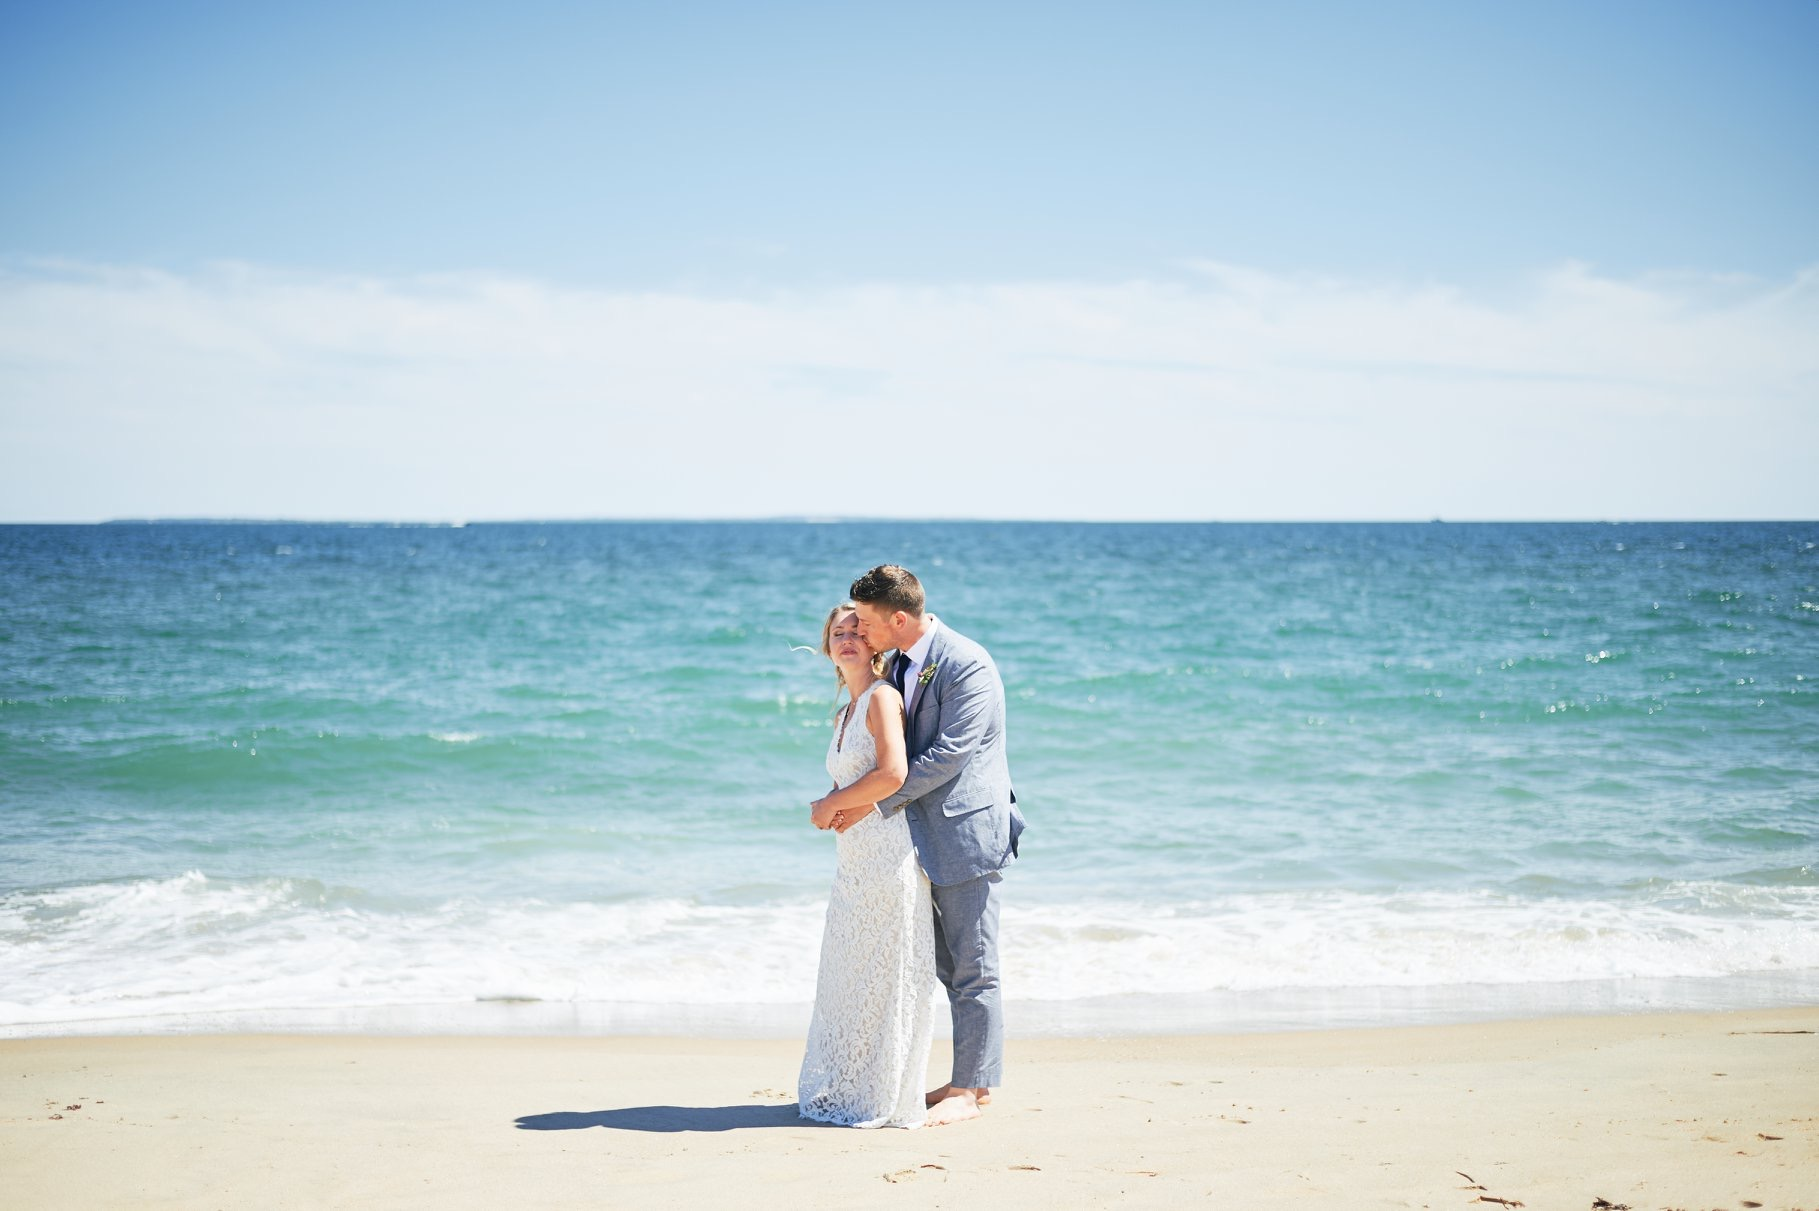 Bride and groom by the ocean on their wedding day - Pearl Weddings & Events